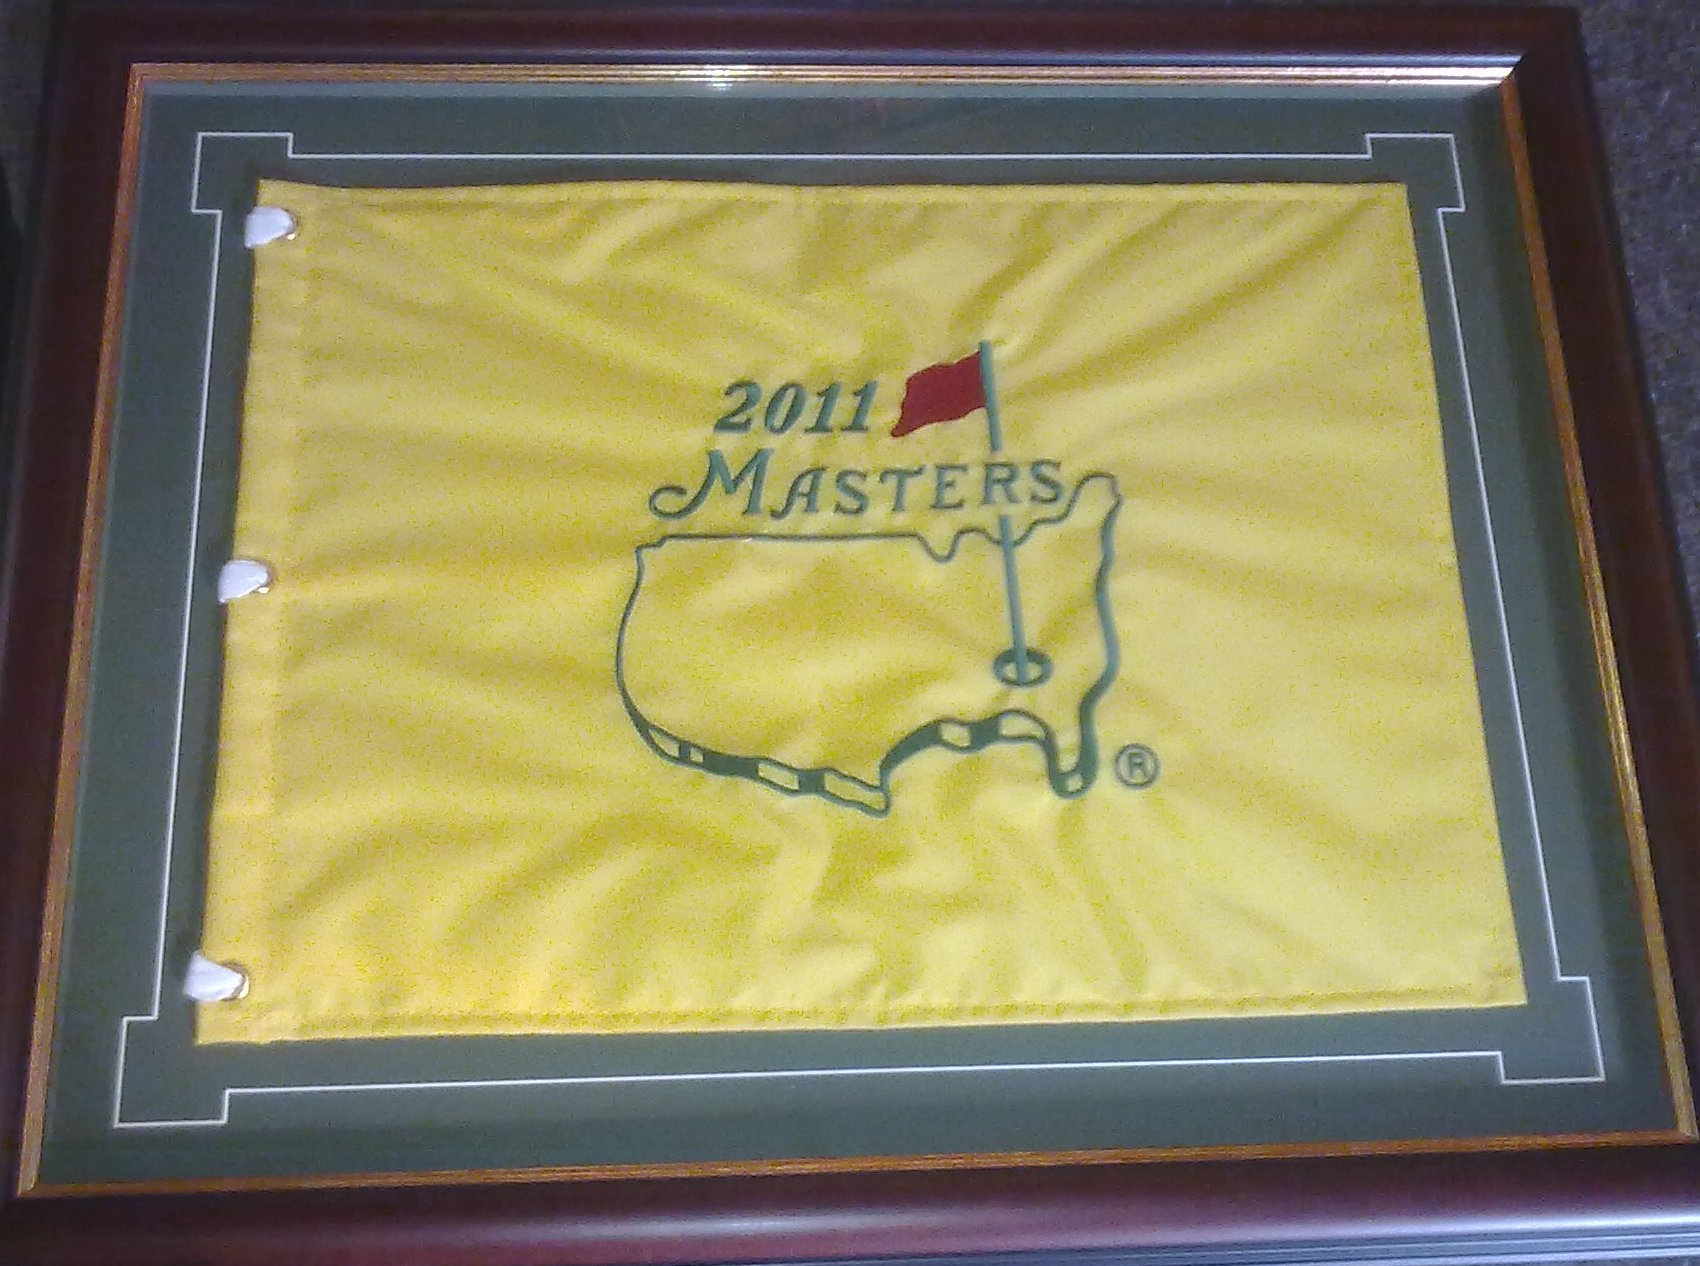 Framed 2011-masters-pin-flag